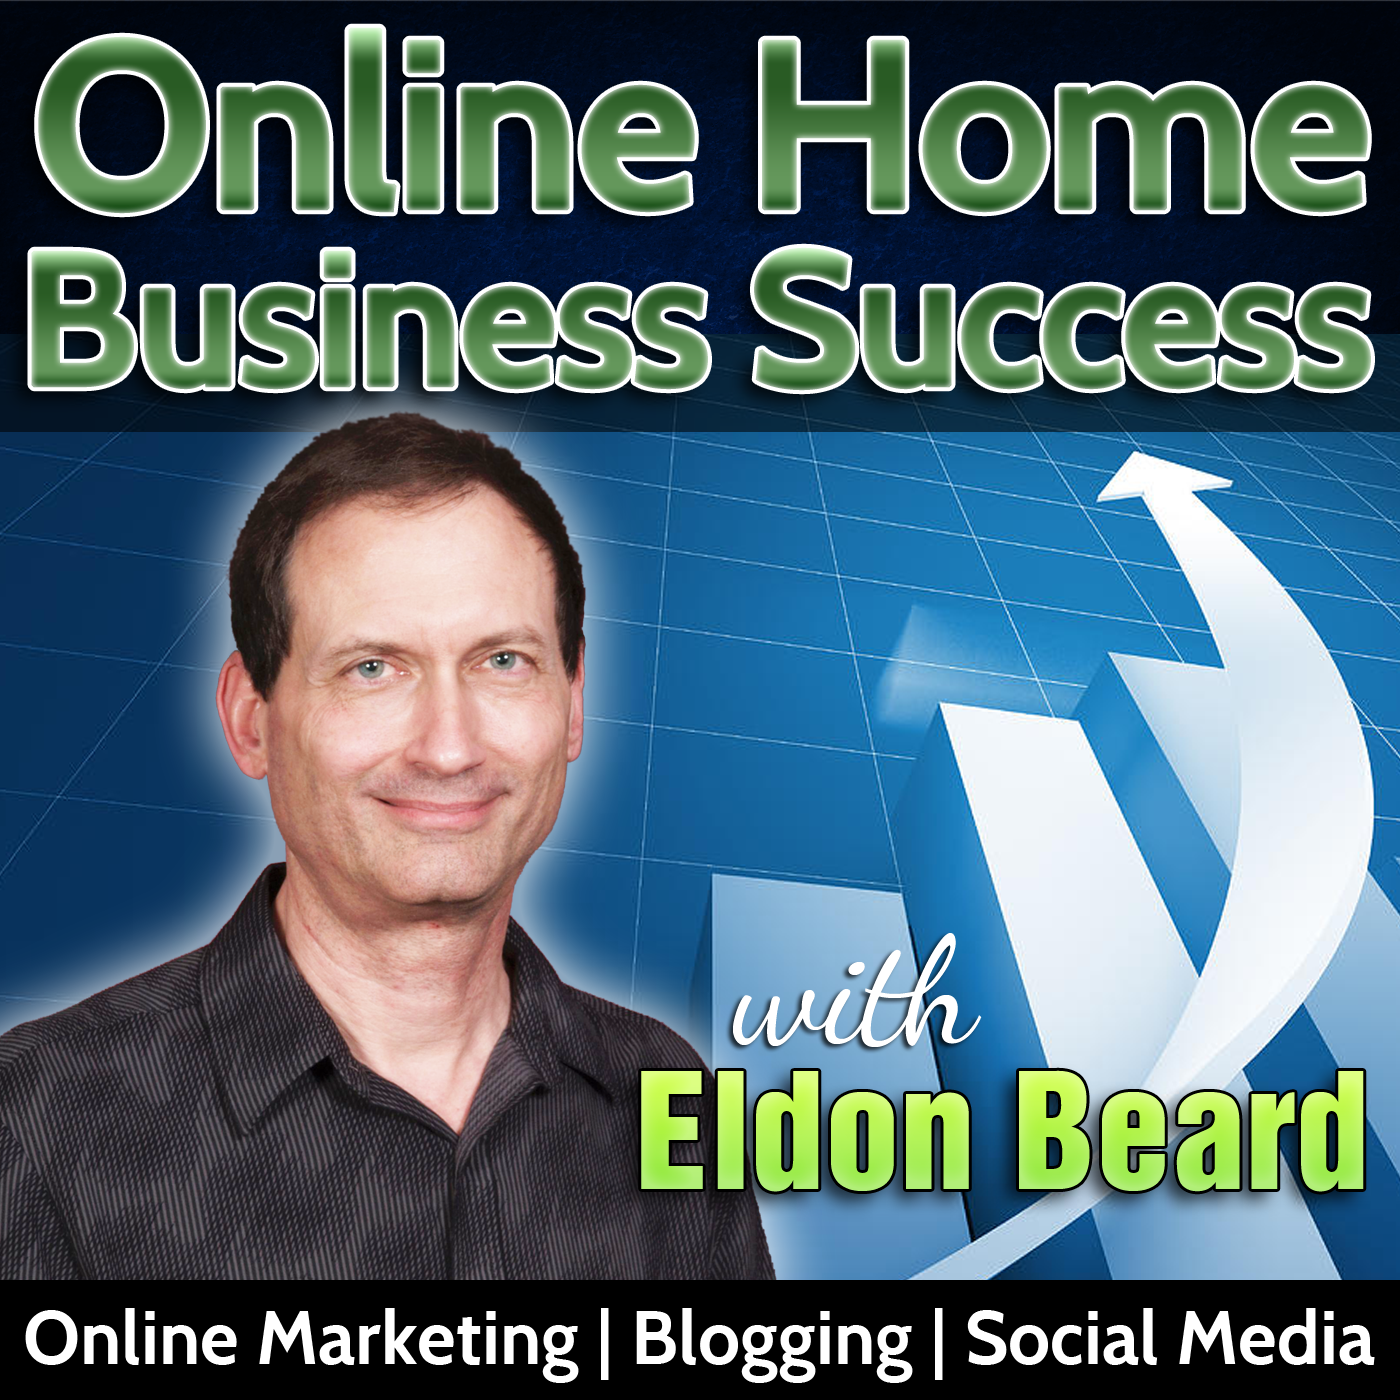 The Online Home Business Success Podcast